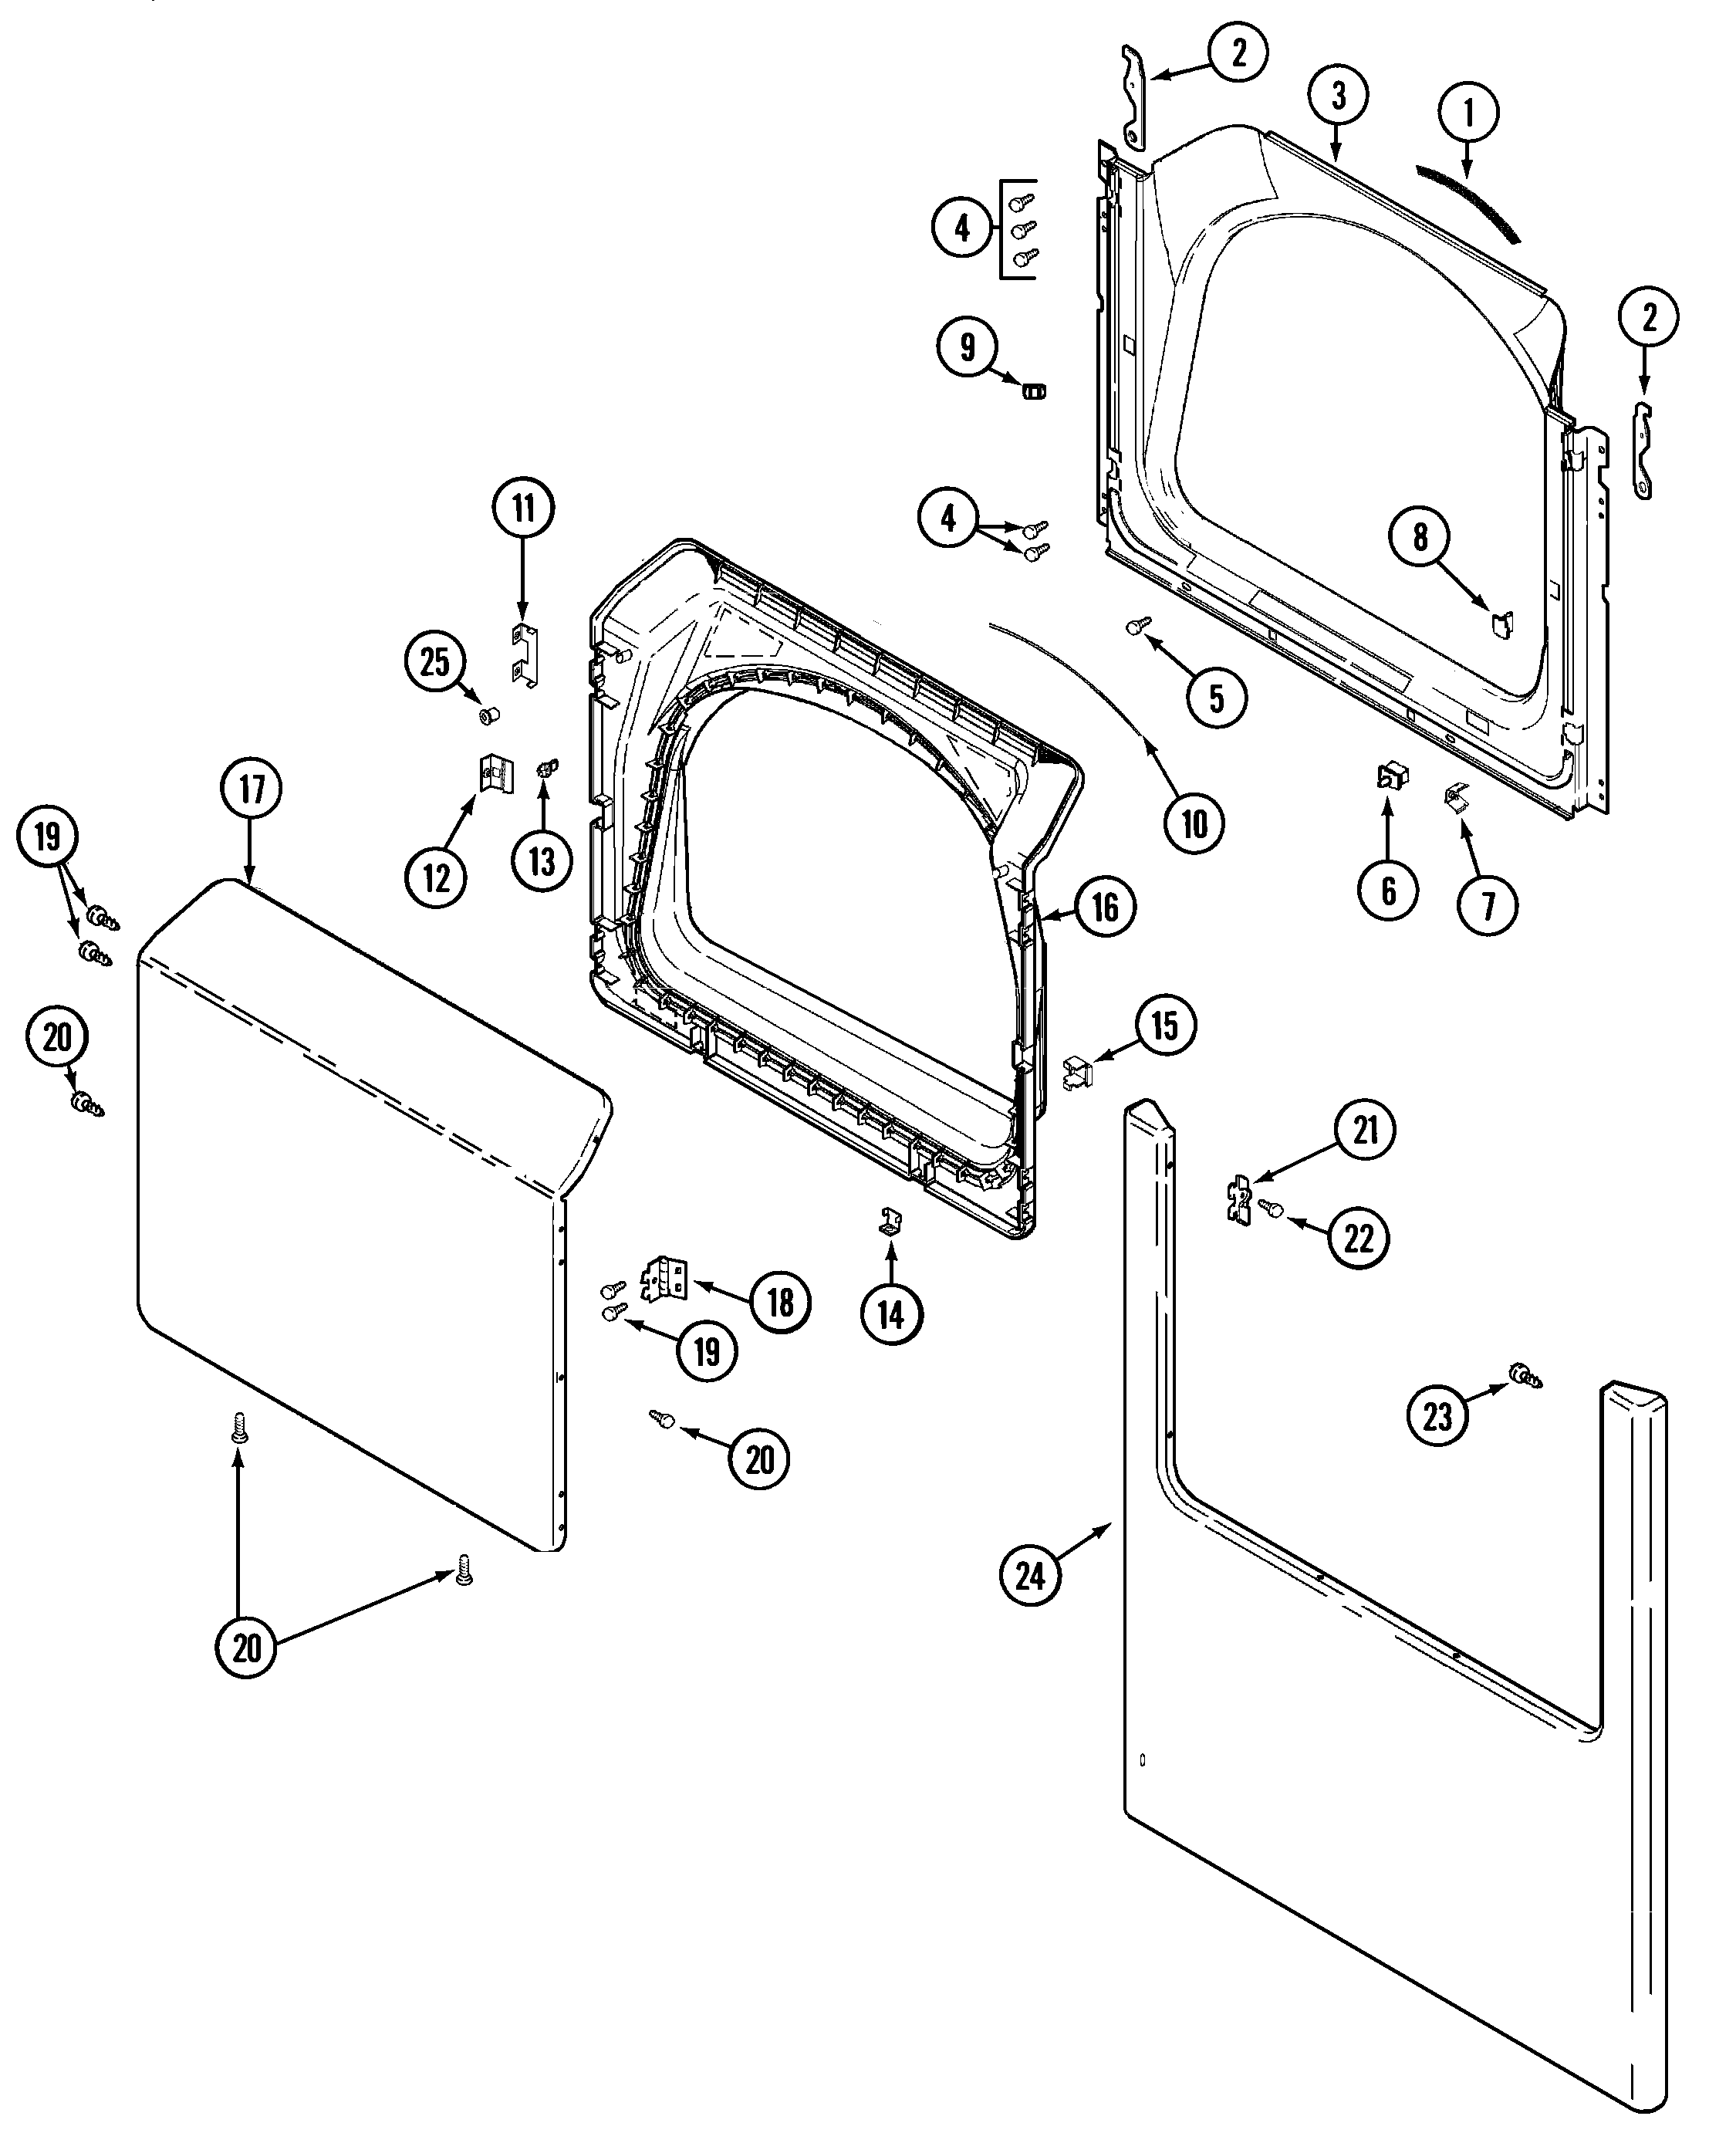 hight resolution of looking for maytag model mdg5500awq dryer repair replacement parts cabinet diagram and parts list for maytag dryerparts model